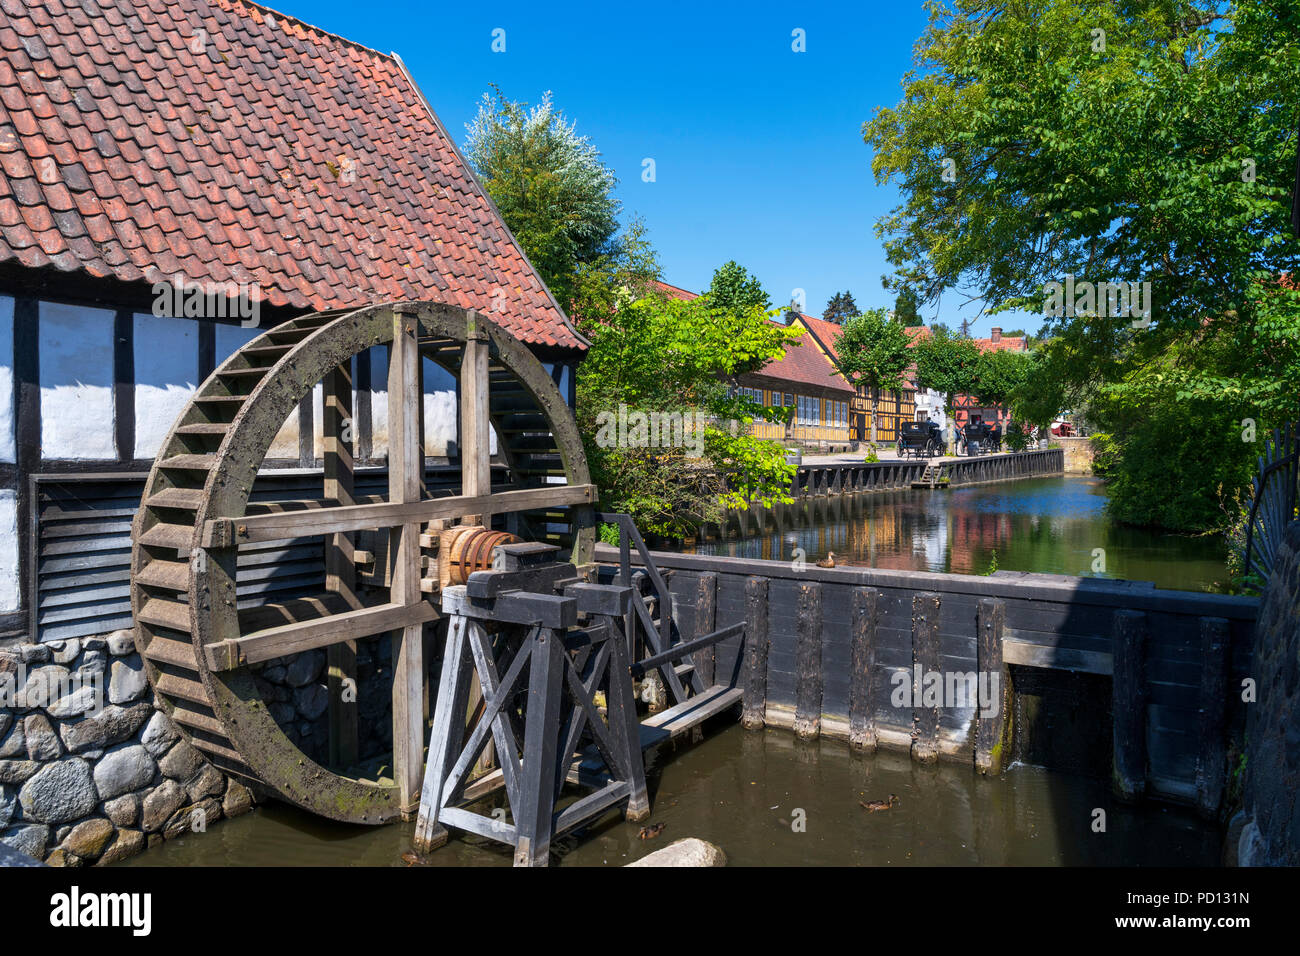 Watermill in The Old Town (Den Gamle By), an open air museum in Aarhus, Denmark Stock Photo